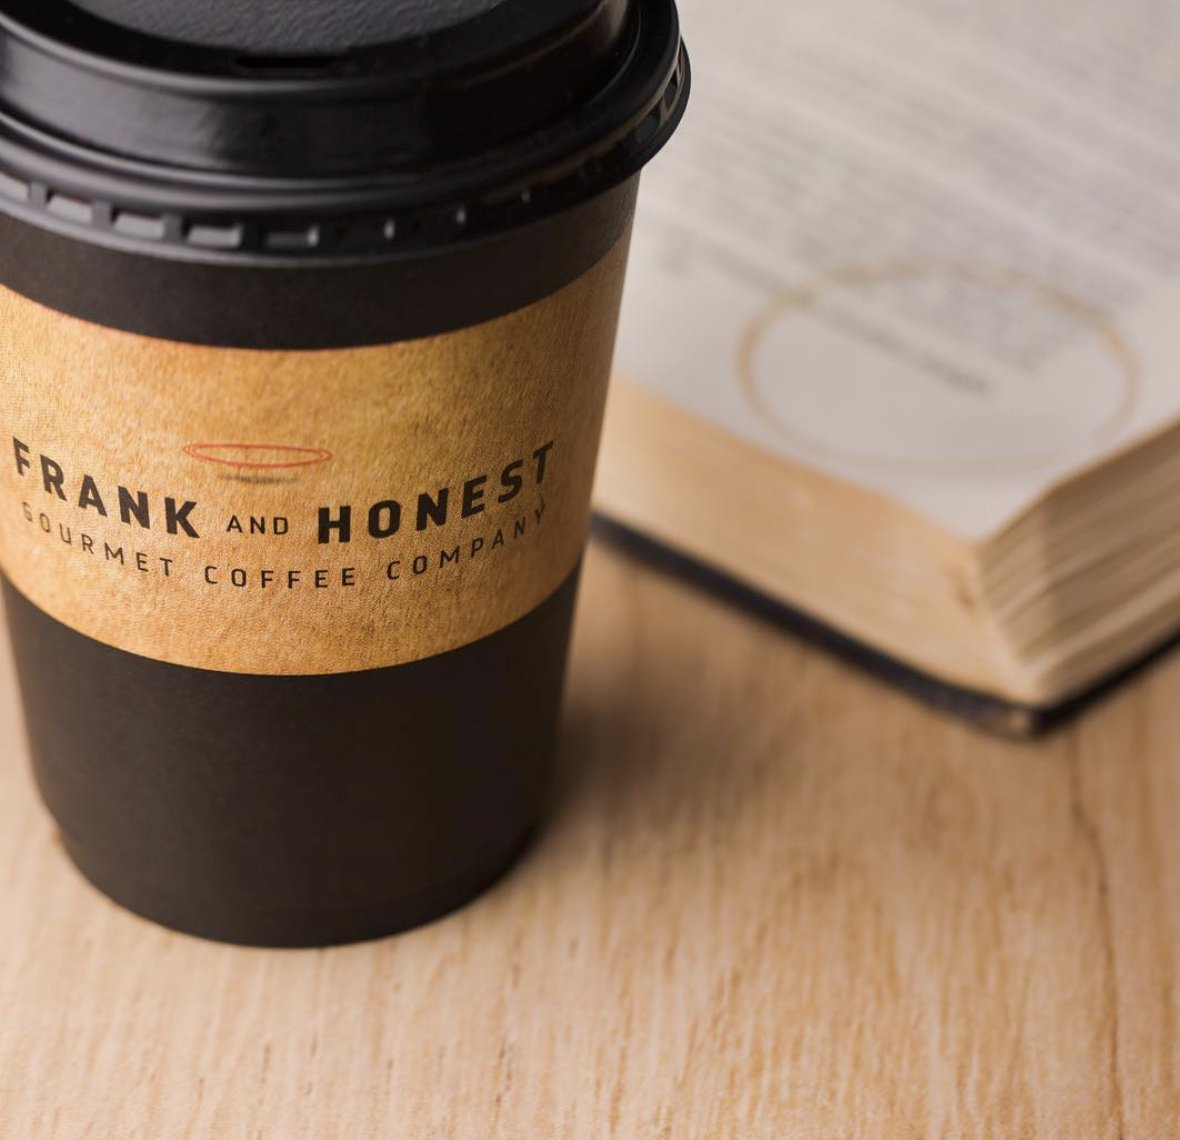 #BeMoreFrankAndHonest, you're more into classic coffee than classic literature. https://t.co/fwz67wBnAF